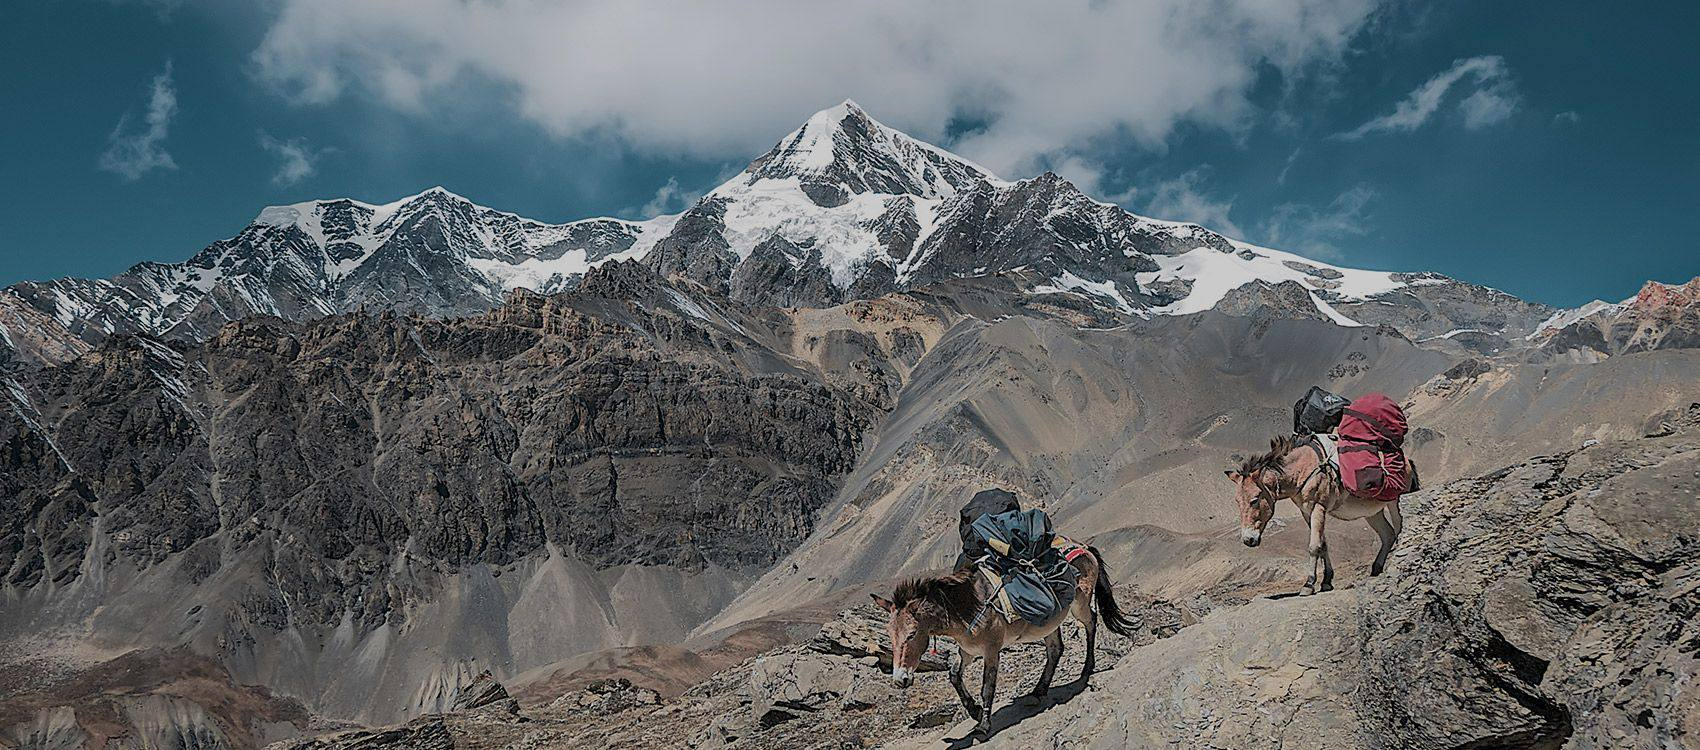 Your adventure life awaits in Nepal